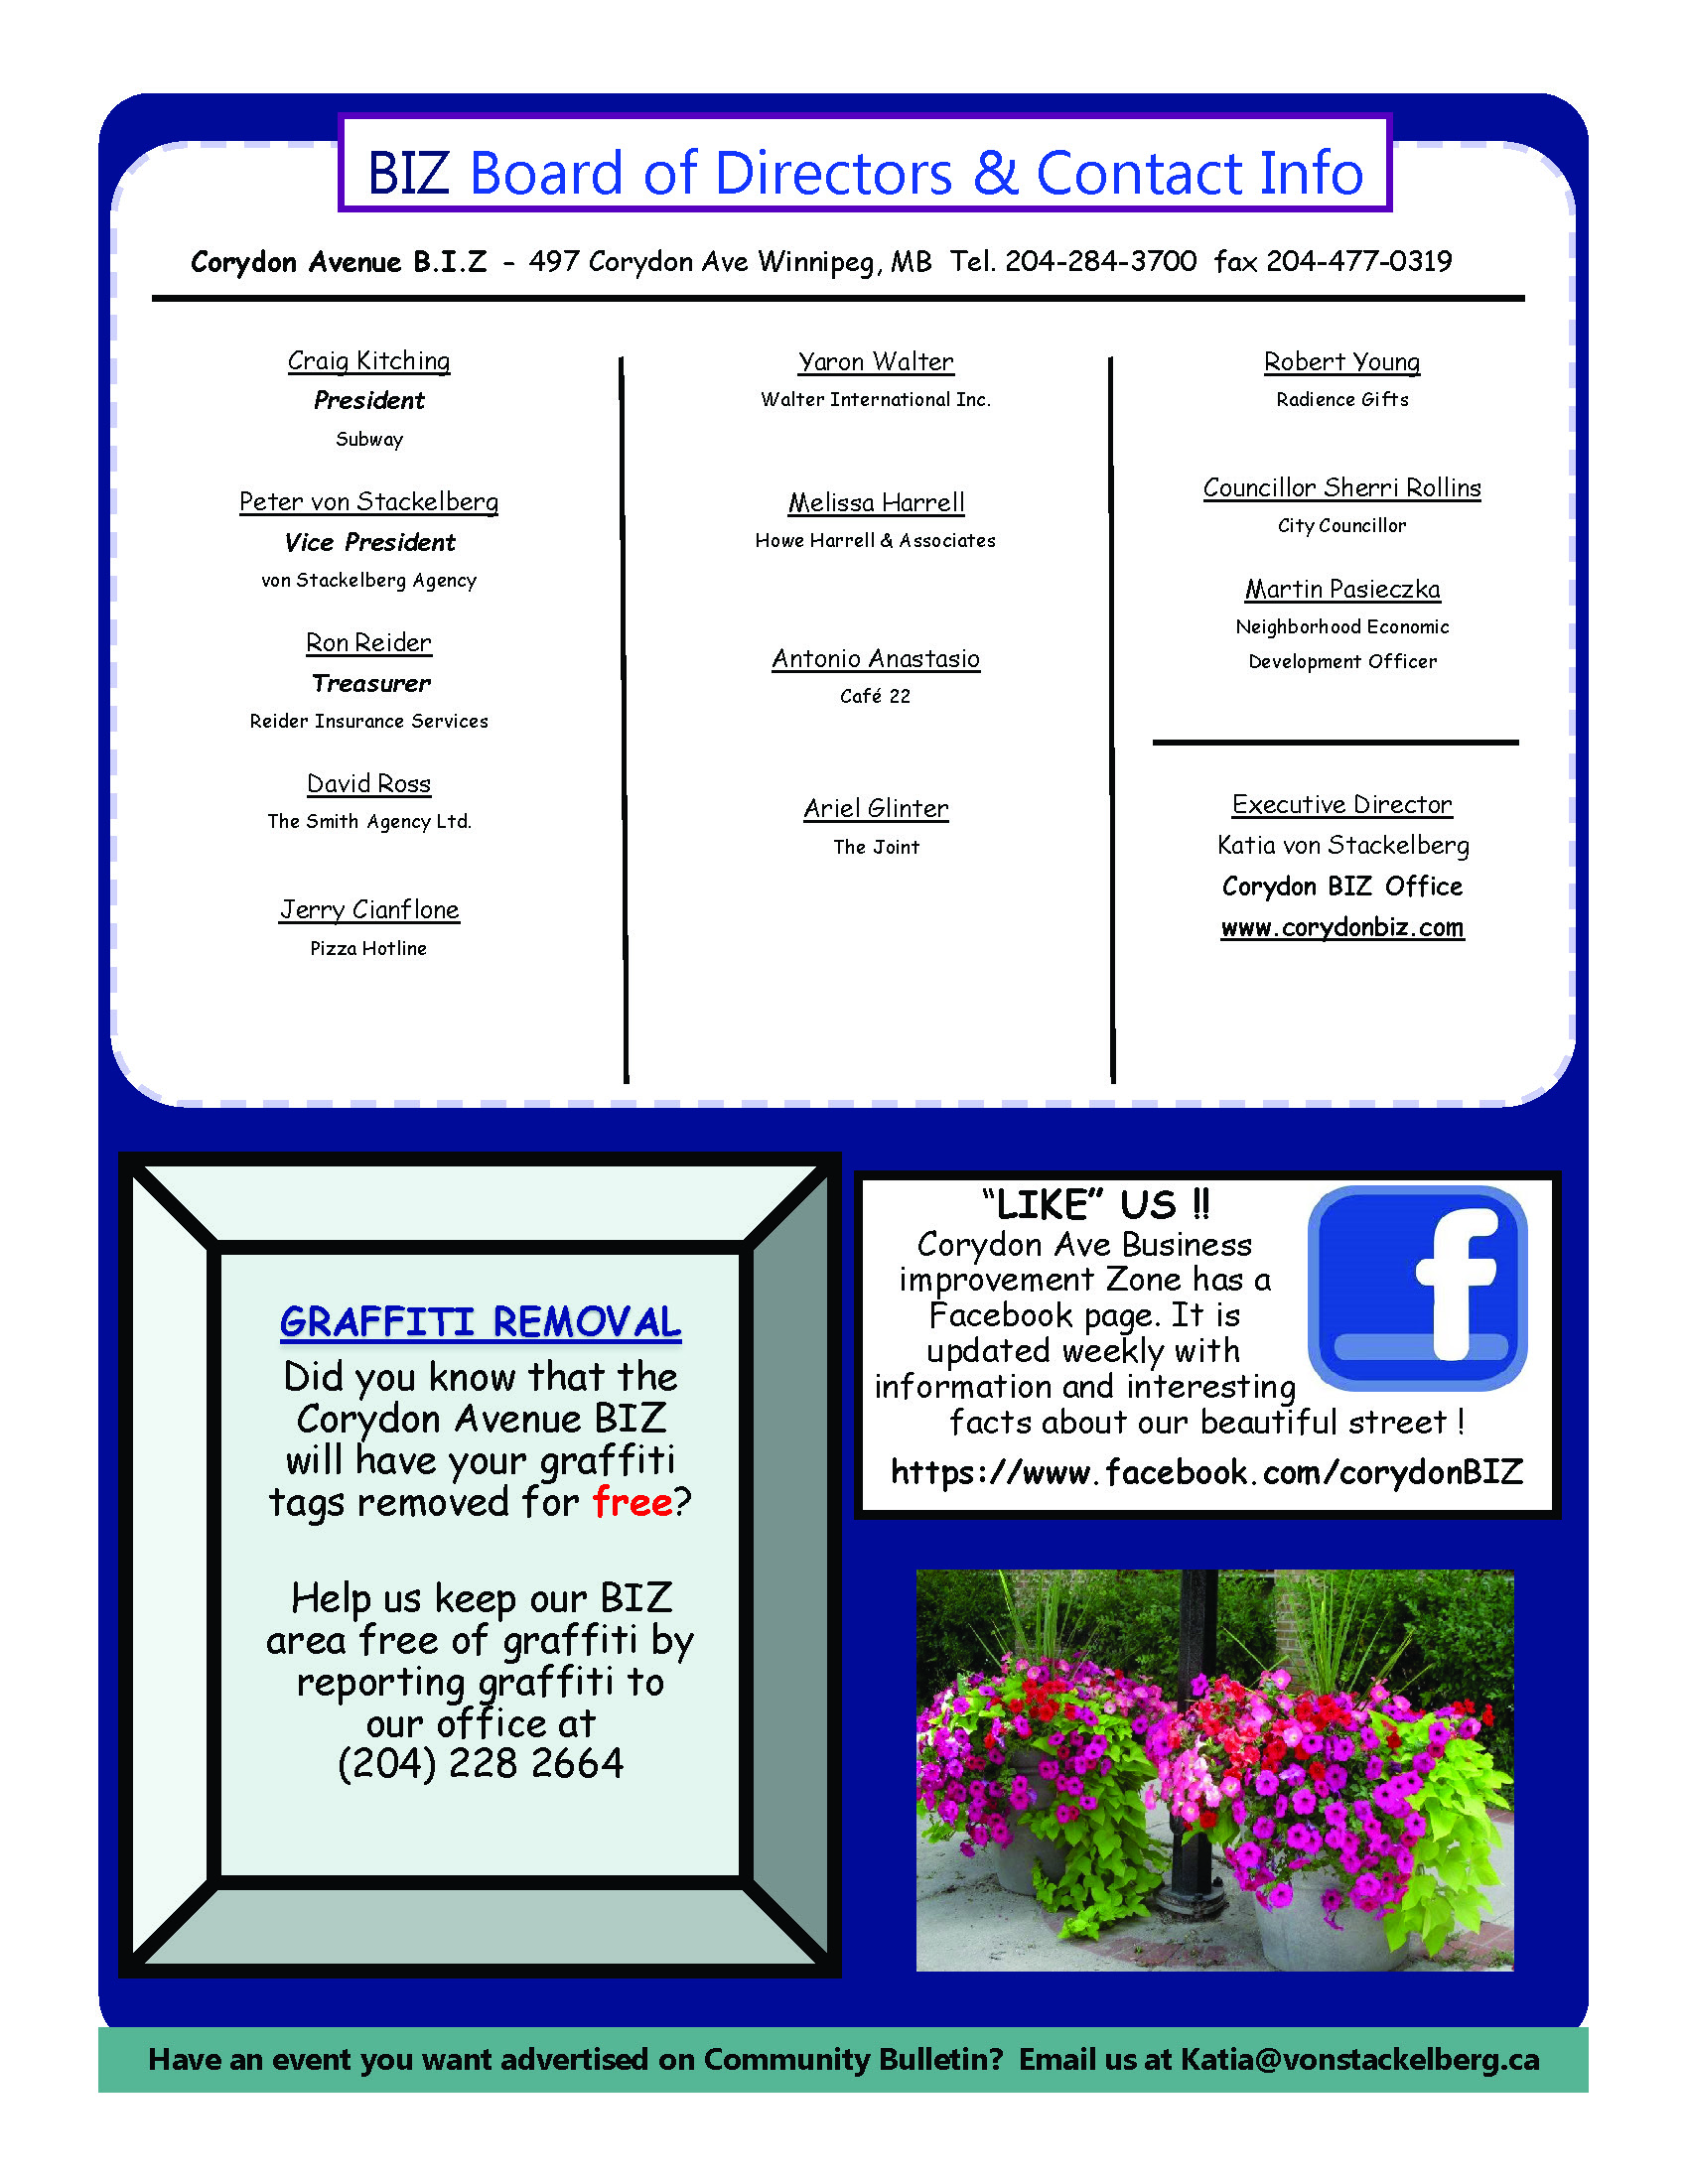 2019 Summer-CORYDON AVE. BIZ Newsletter_Page_09.jpg